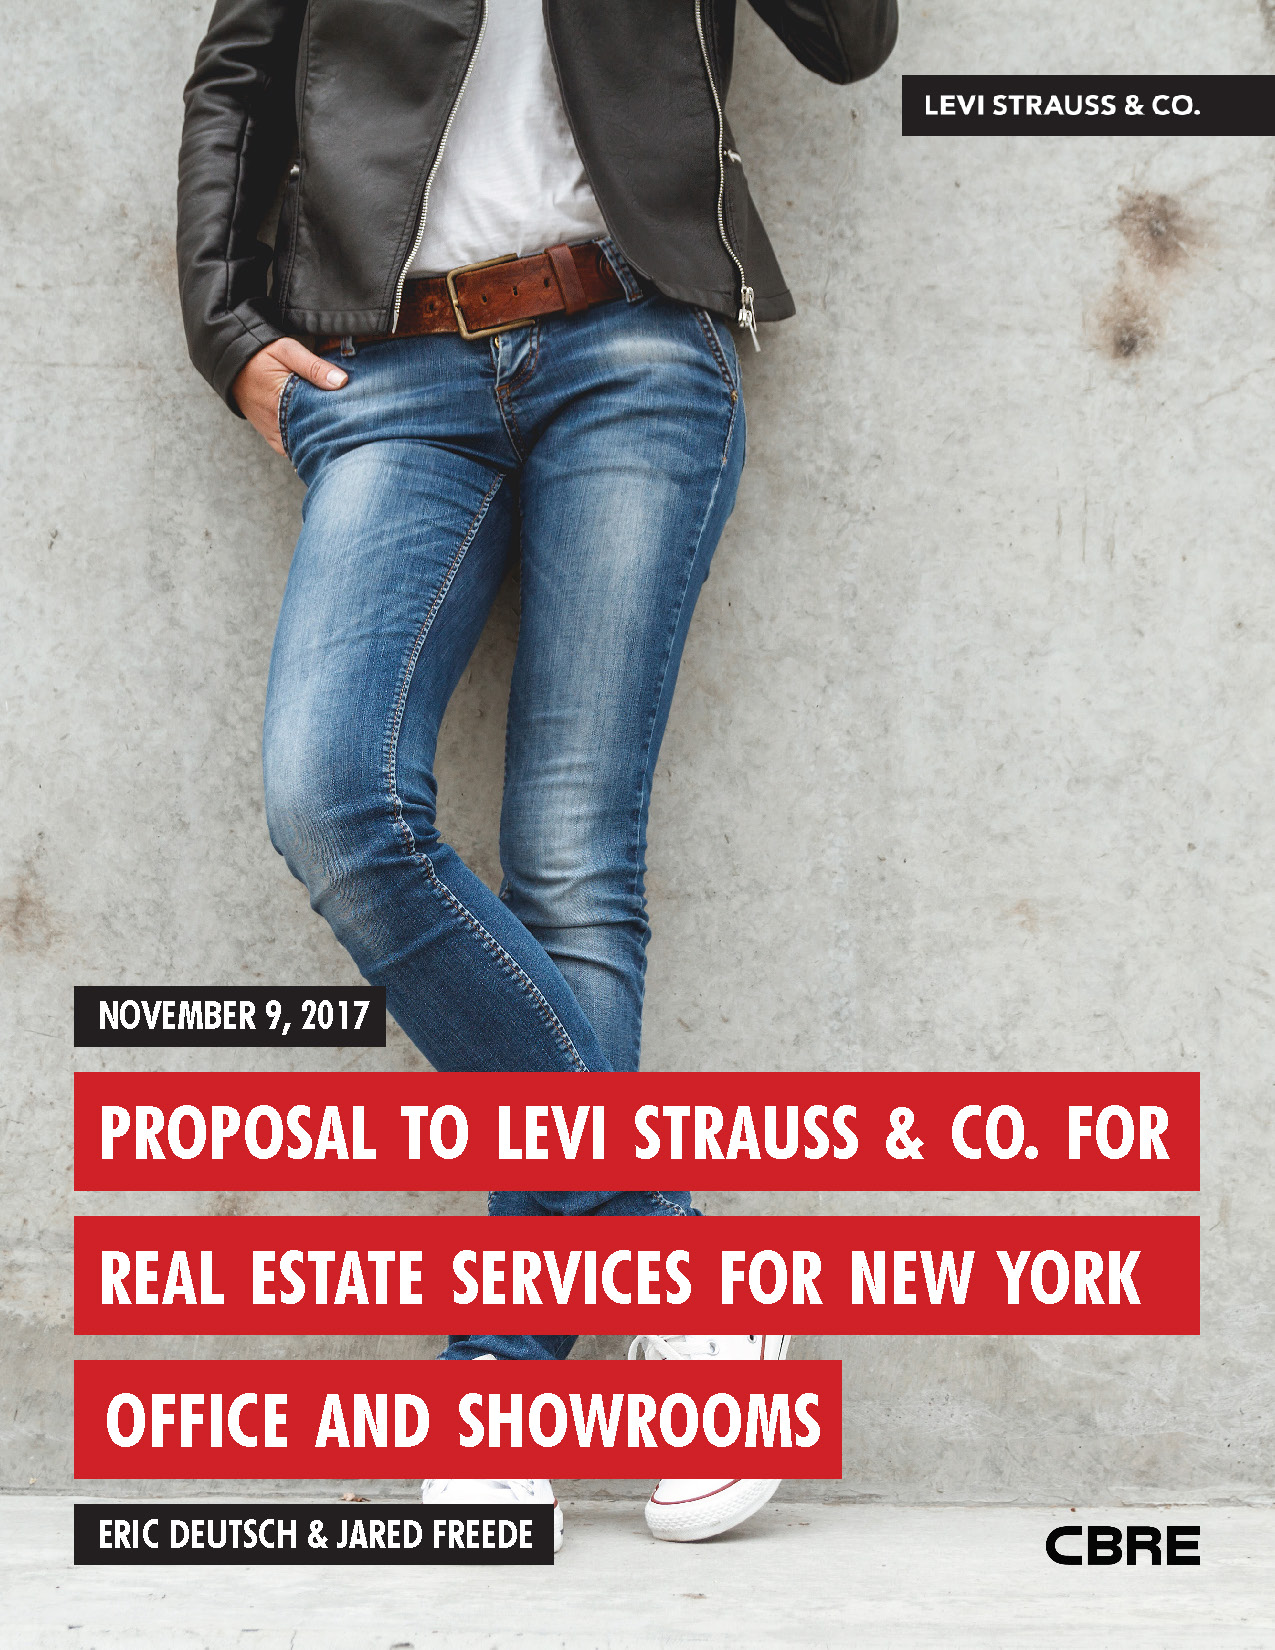 Levi Strauss_Office+Showrooms_Freede_11-09-17_v3_Page_1.jpg